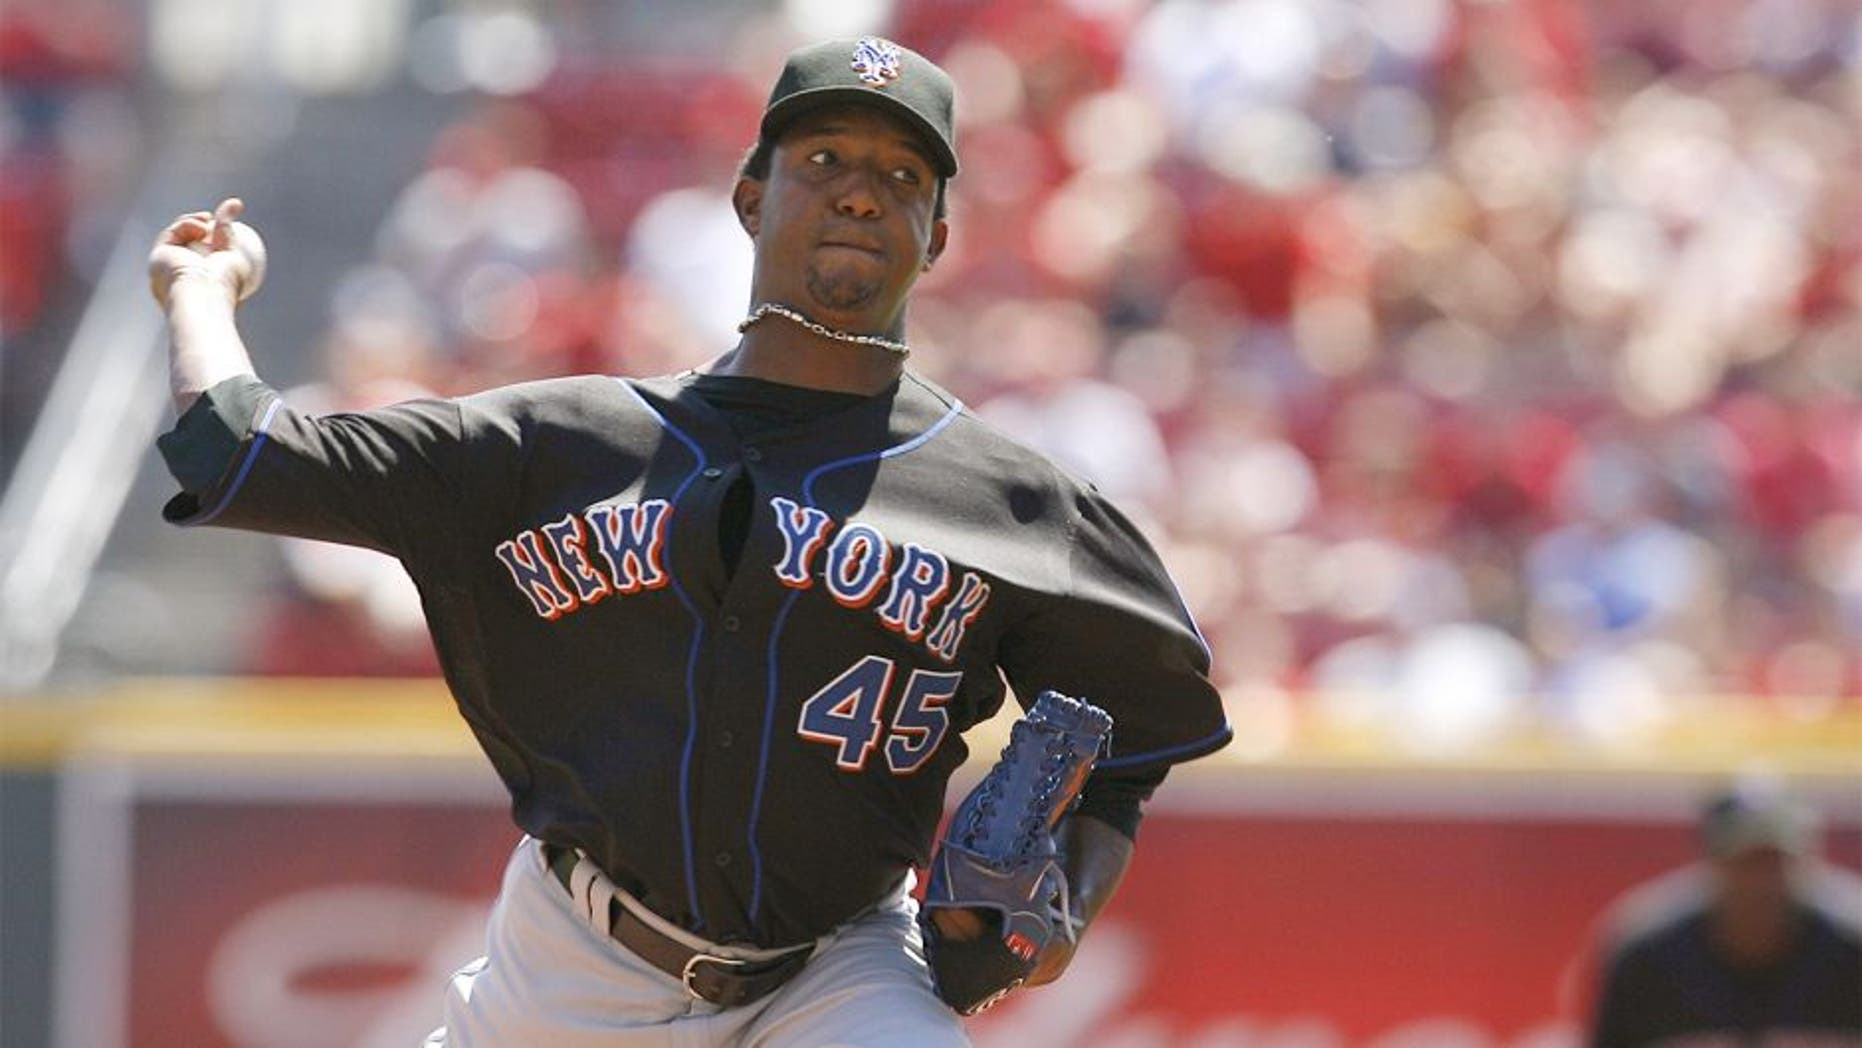 CINCINNATI - SEPTEMBER 3: Pitcher Pedro Martinez #45 of the New York Mets pitches against the Cincinnati Reds on September 3, 2007 at Great American Ball Park in Cincinnati, Ohio. Pedro Martinez recorded his 3000th strikeout during this game. (Photo by Thomas E. Witte/Getty Images)